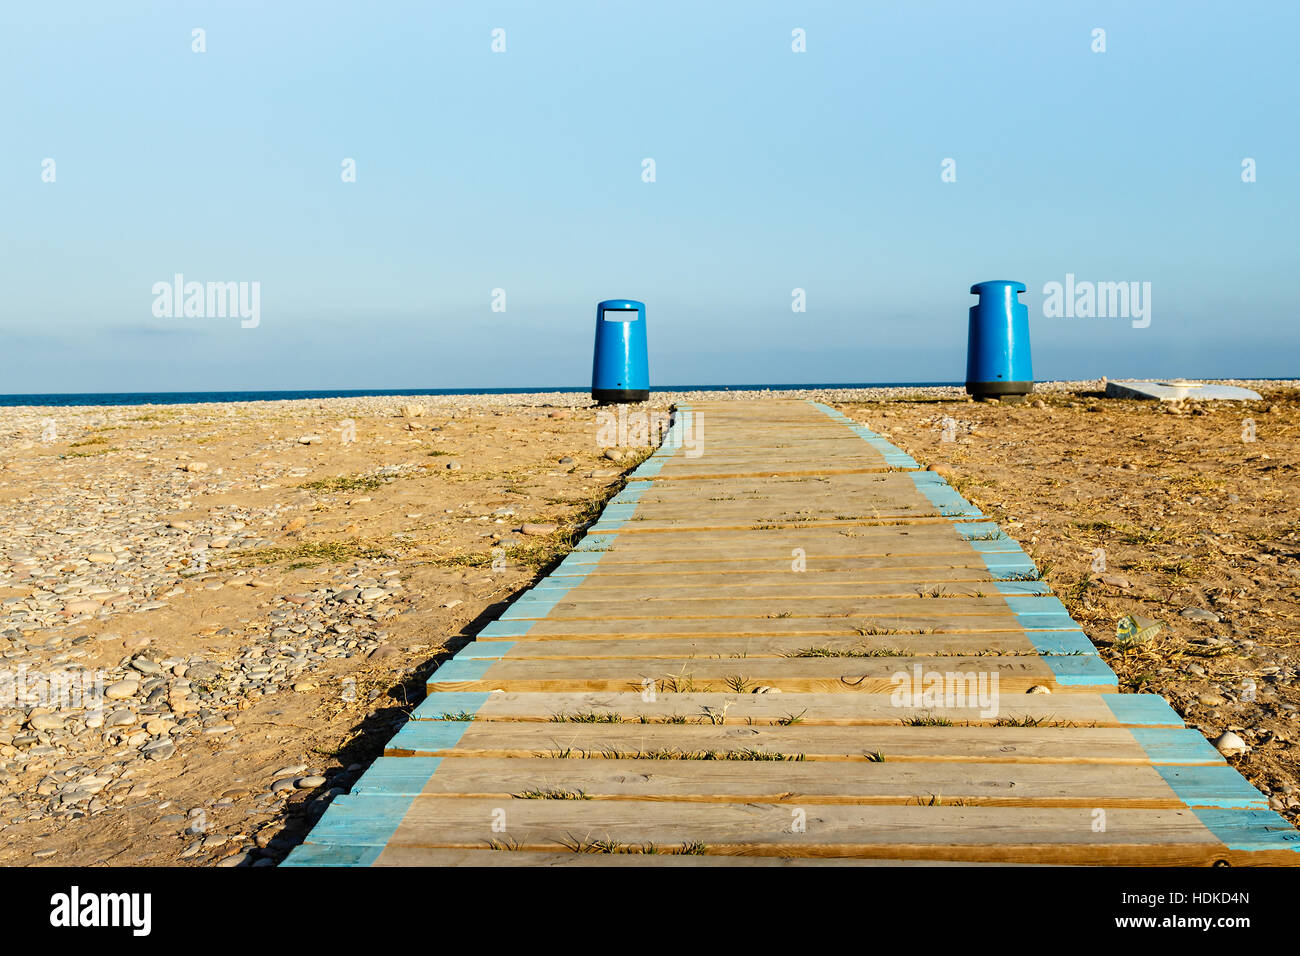 Wooden walkway on the beach with two litter bins in the background. Horizontal image - Stock Image